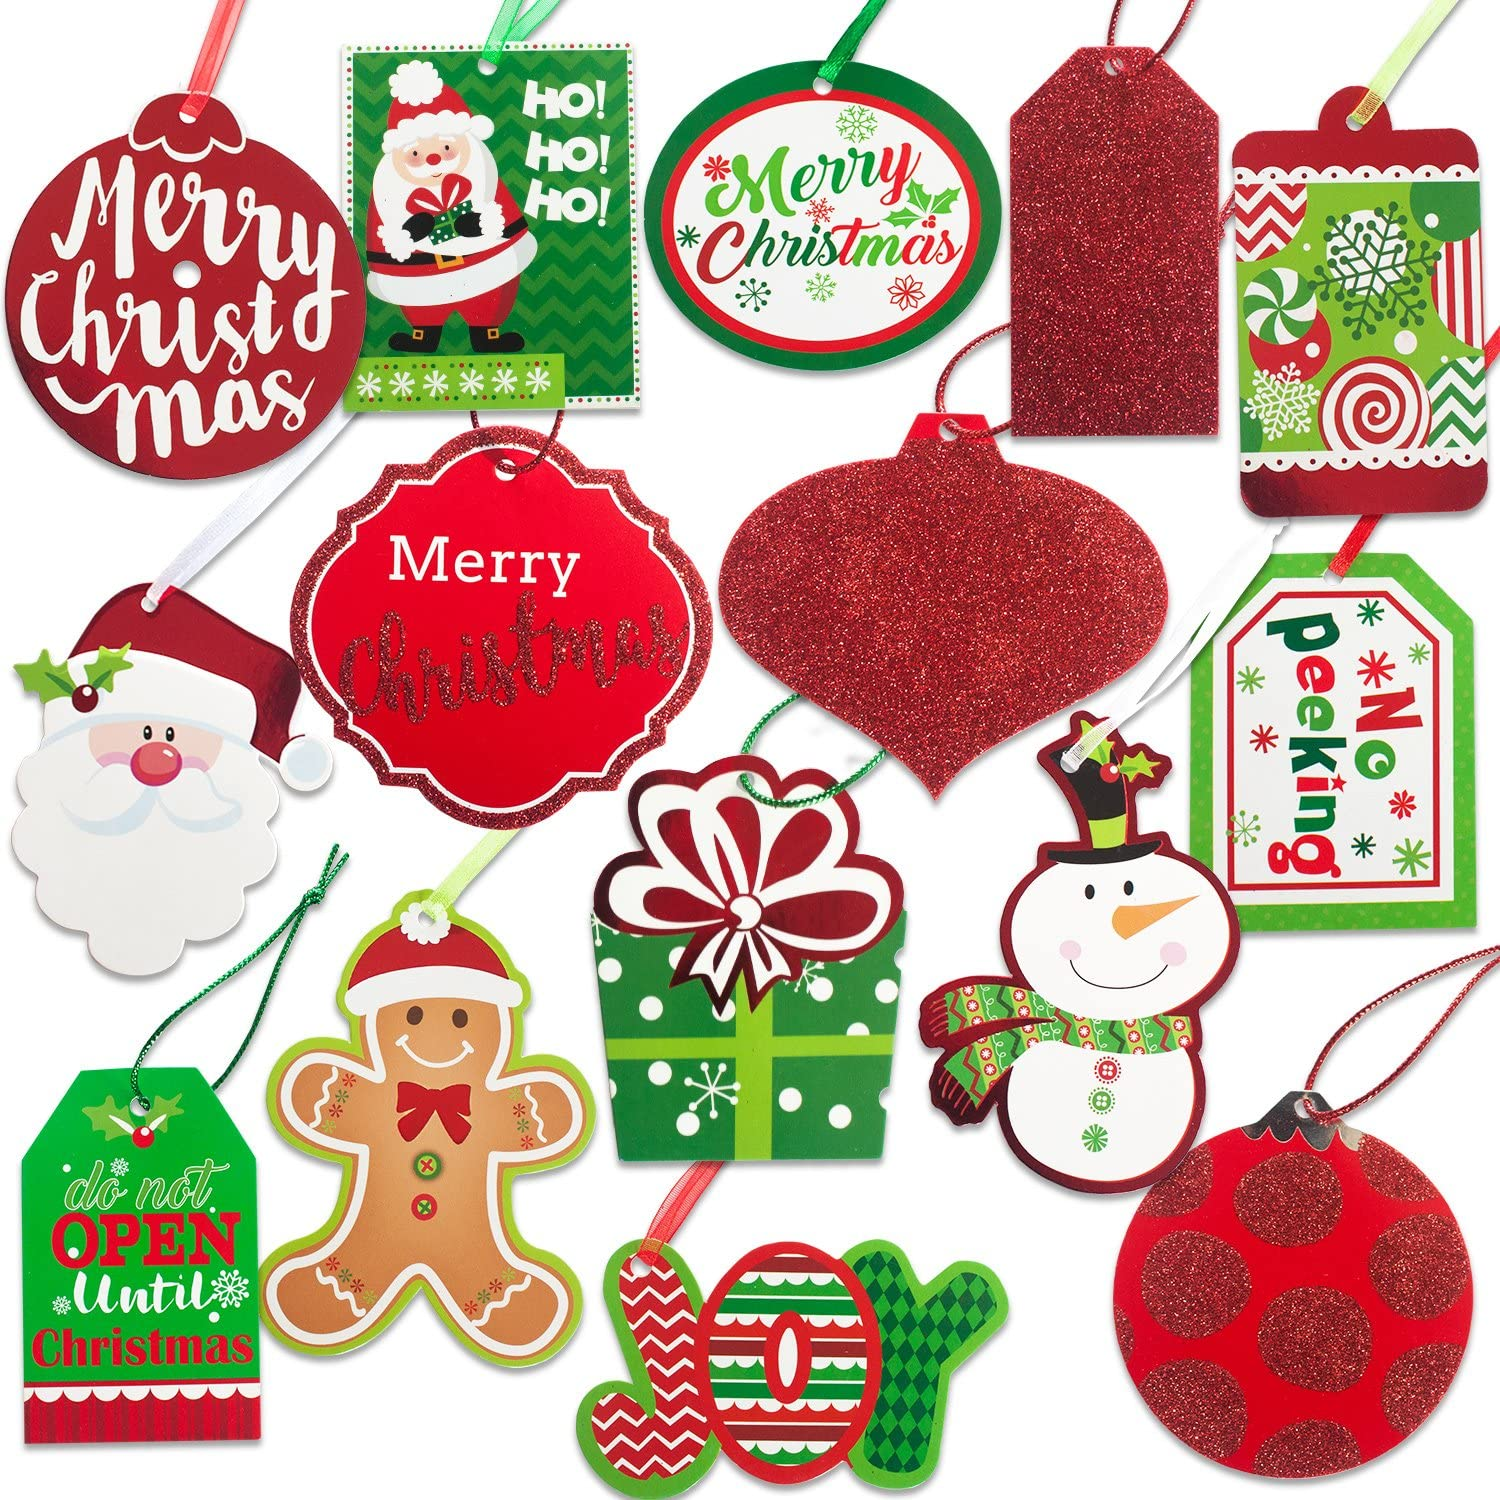 Christmas Gift Tags 60 Count with Untied String (15 Assorted Glitter, Foil, Printed Designs for DIY Xmas Present Wrap and Label Package Name Card): Garden & Outdoor